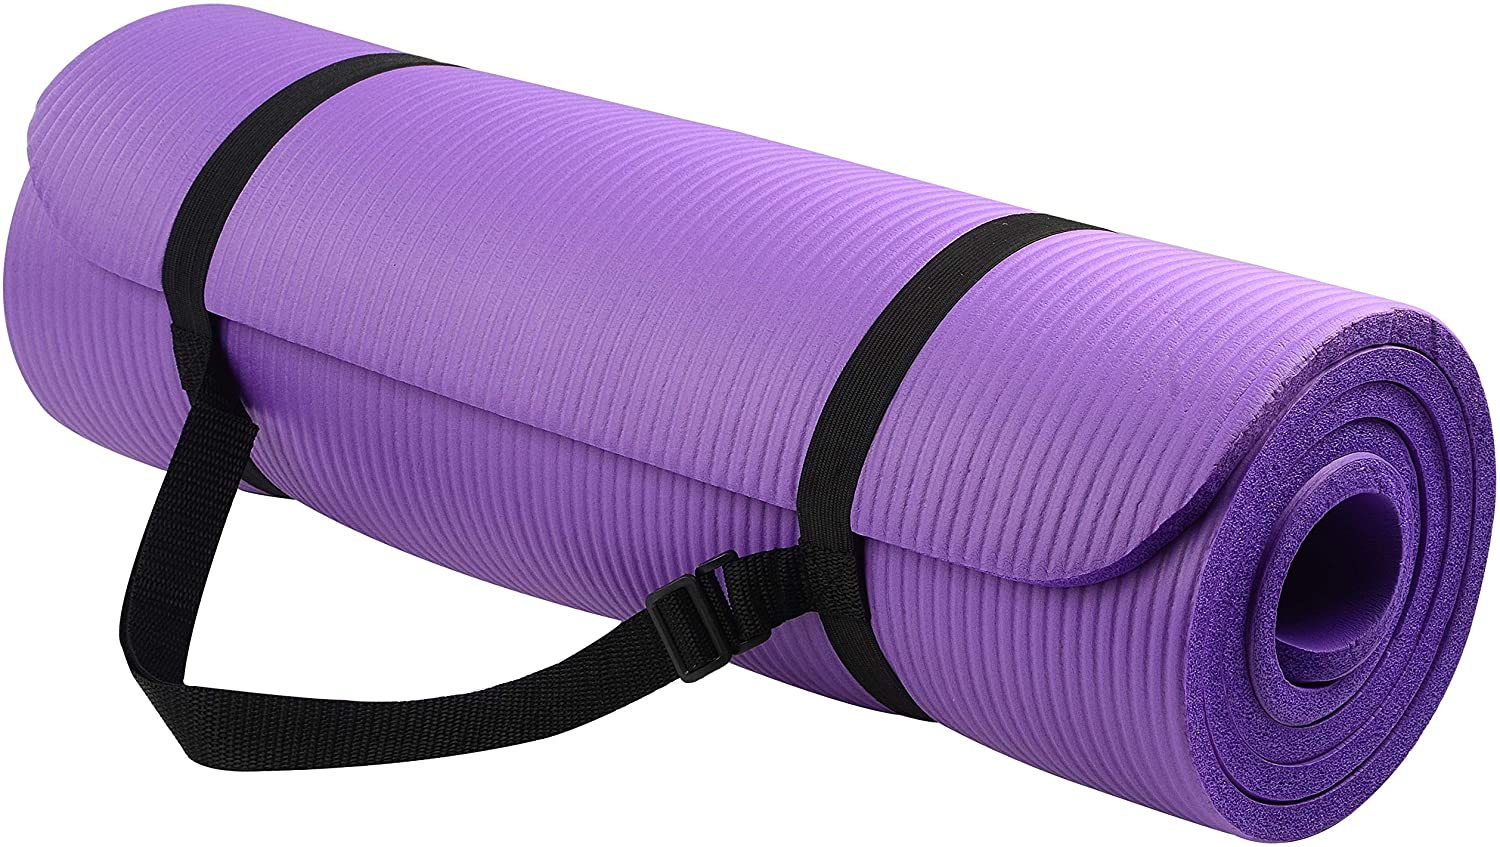 Buy BalanceFrom GoYoga All-Purpose 1/2-Inch Extra Thick High Density  Anti-Tear Exercise Yoga Mat with Carrying Strap Online in Vietnam.  B00FO9ZRYG